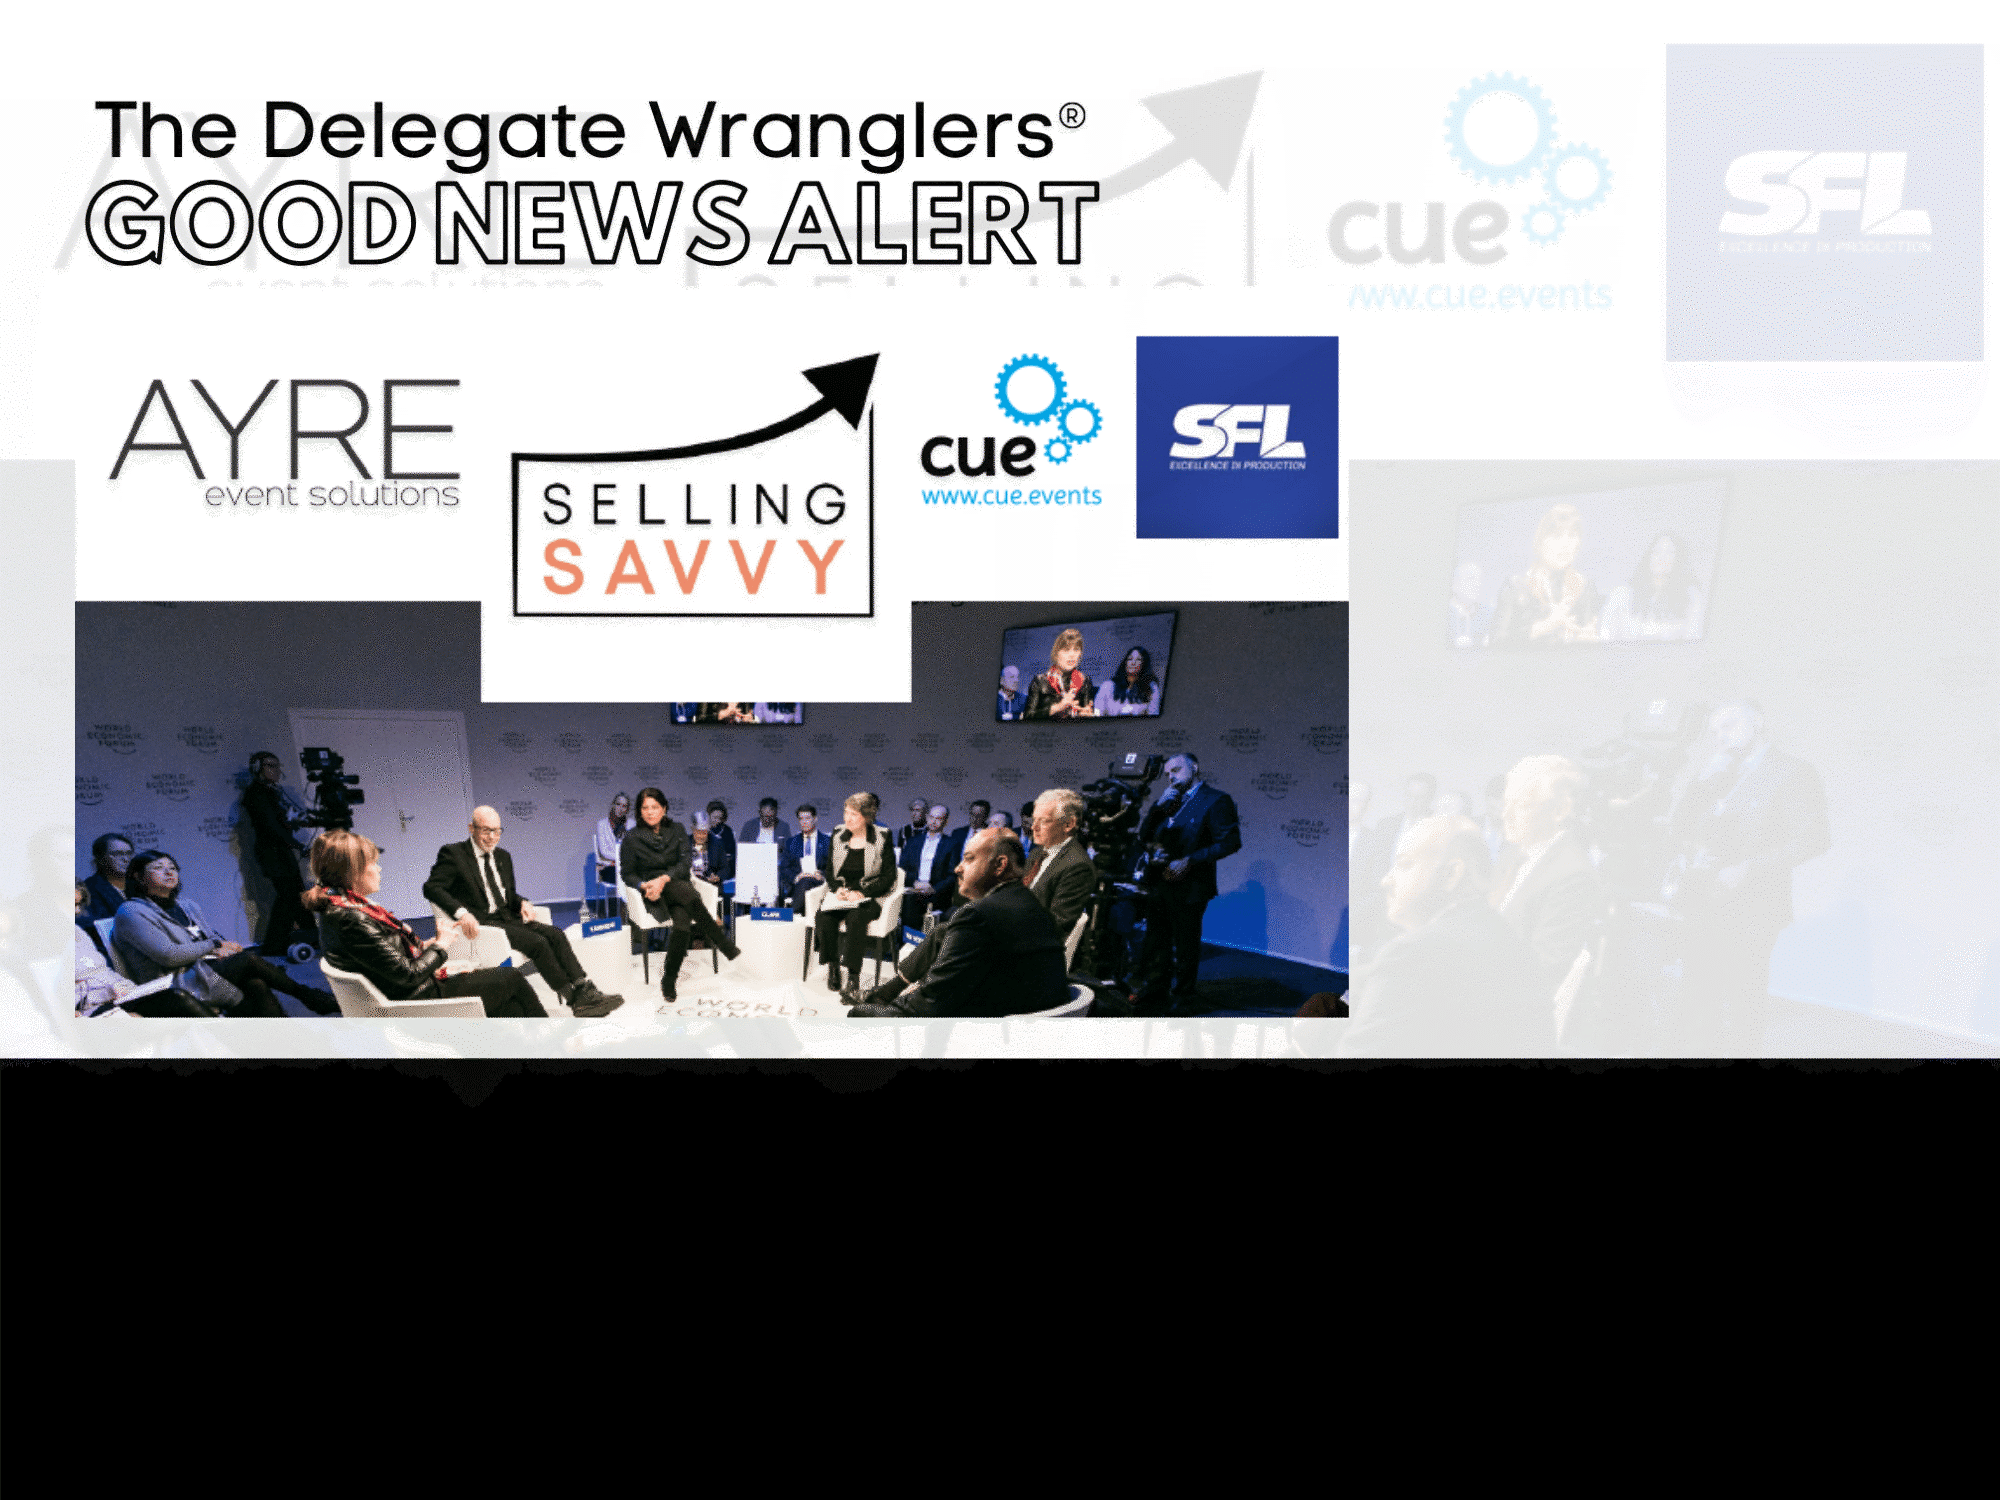 Selling Savvy partners with three AV Companies to support venues and hotels to sell Hybrid Events effectively